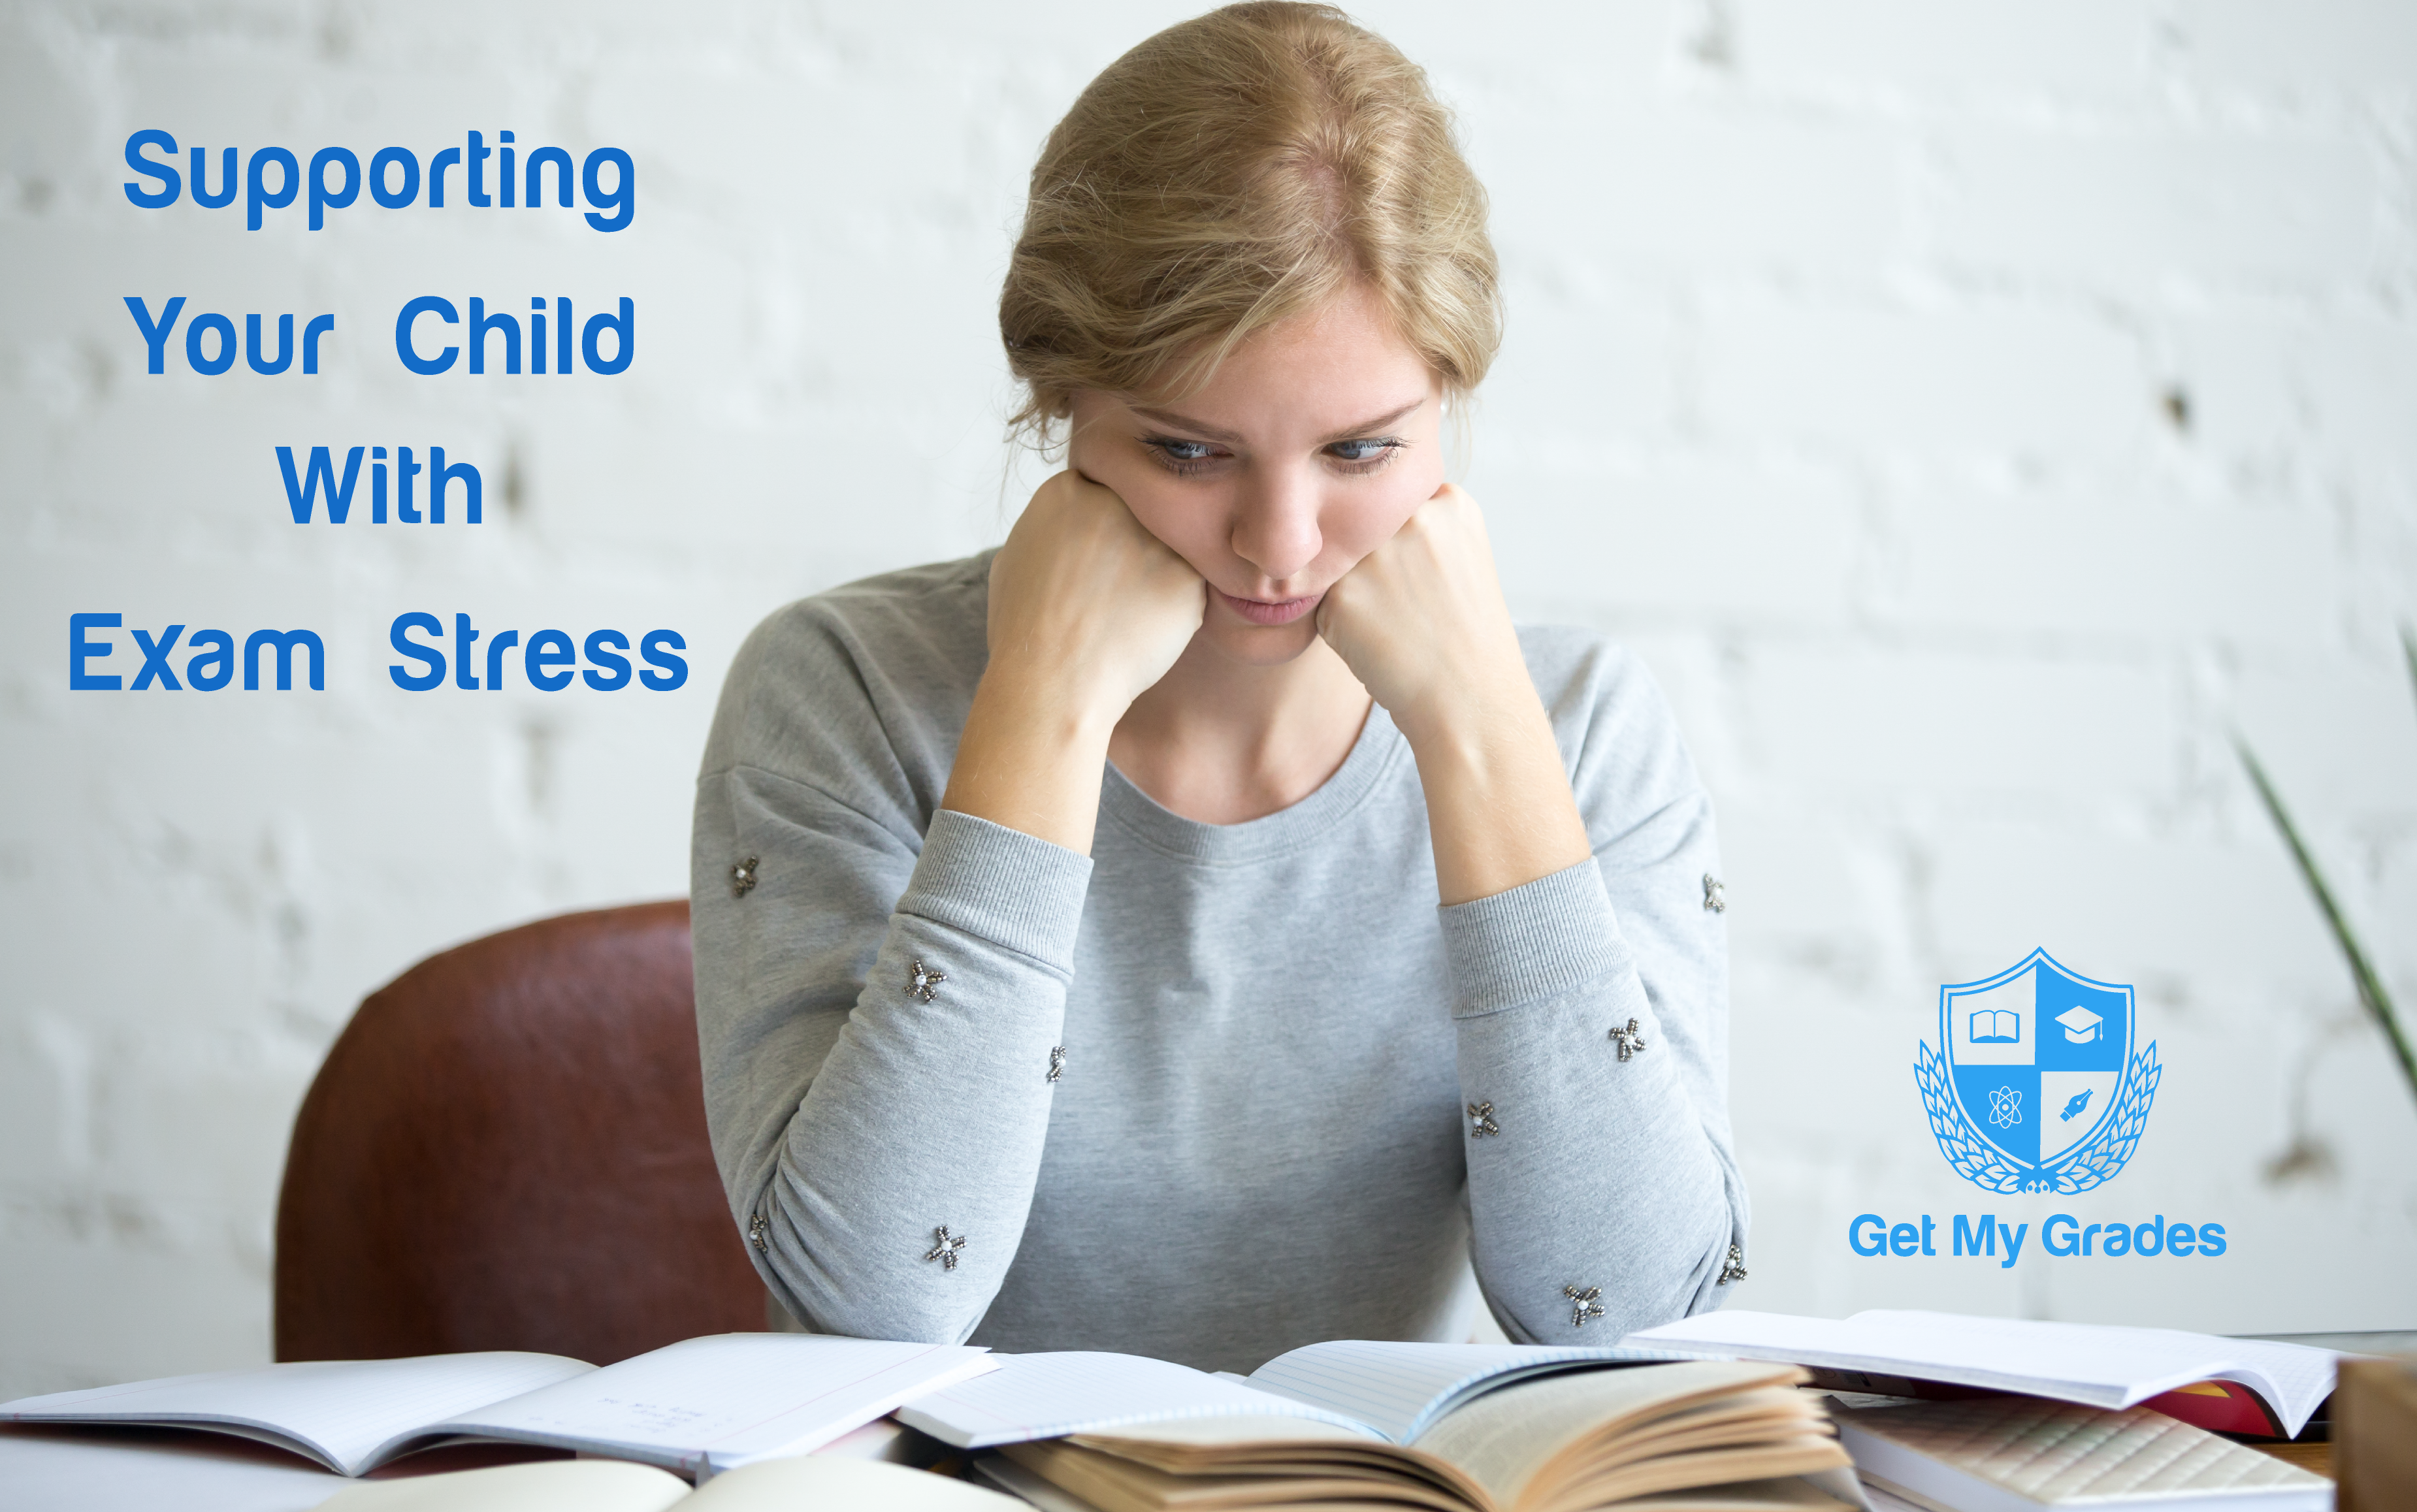 Supporting Your Child With Exam Stress